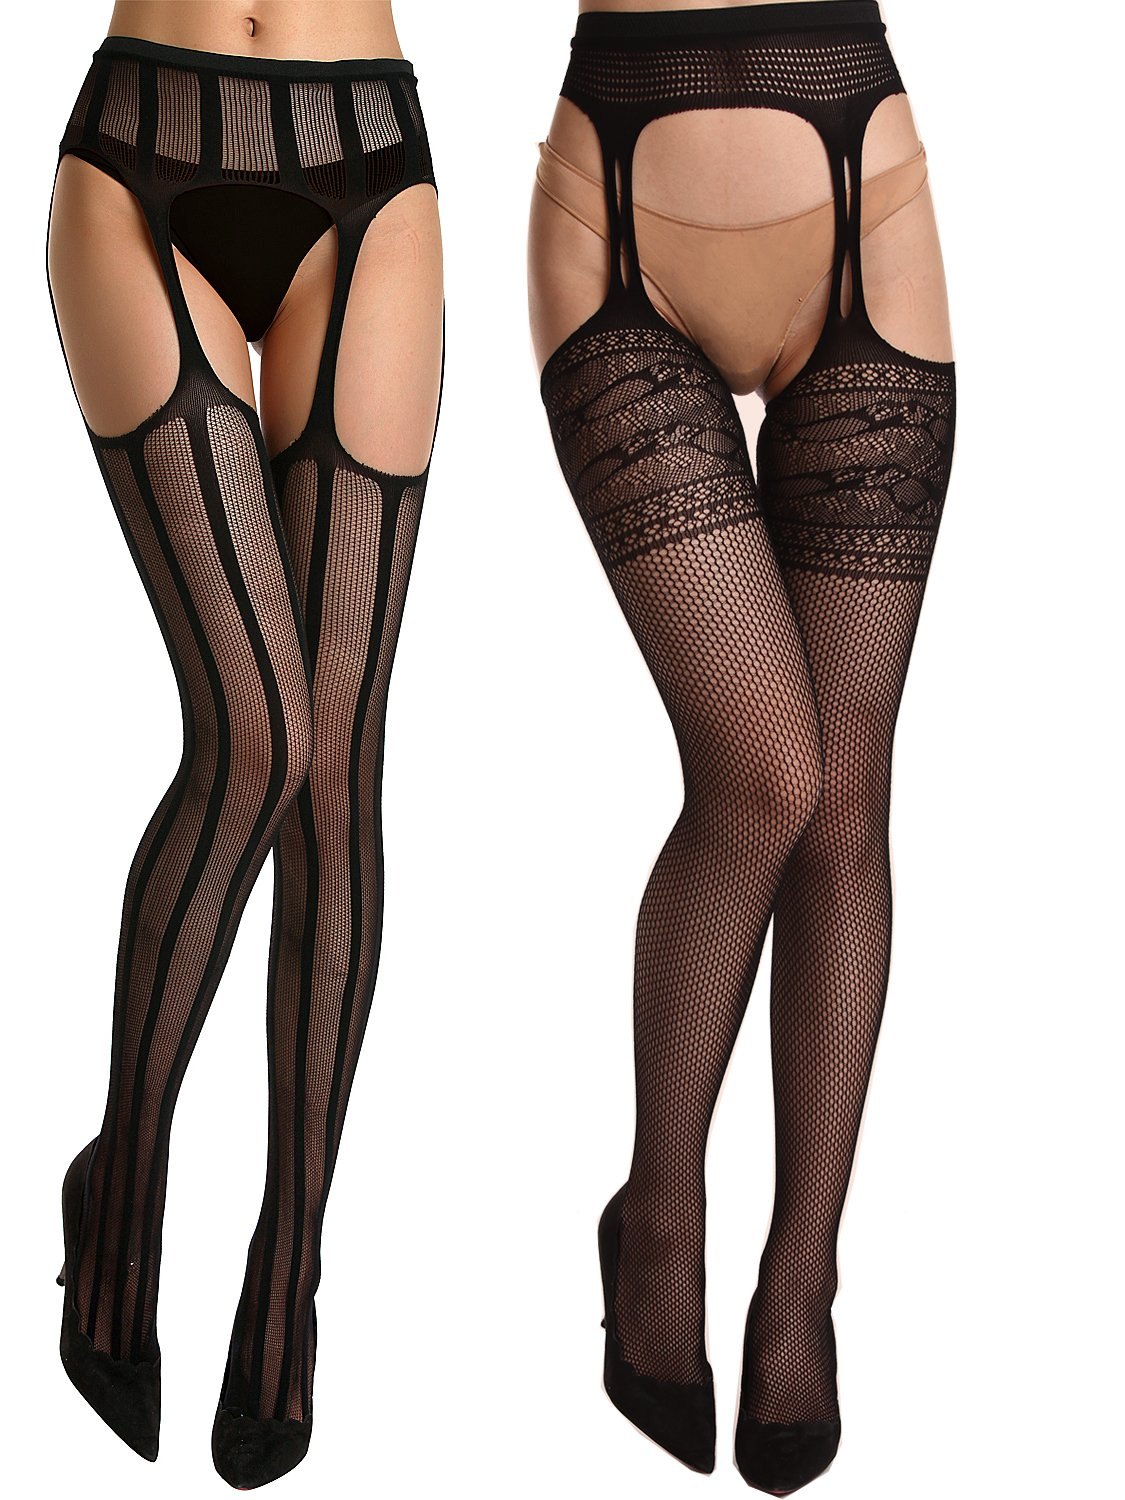 Florboom Womens Suspender Pantyhose Patterned Crochless Garter Fishnet Tights 2 Pairs